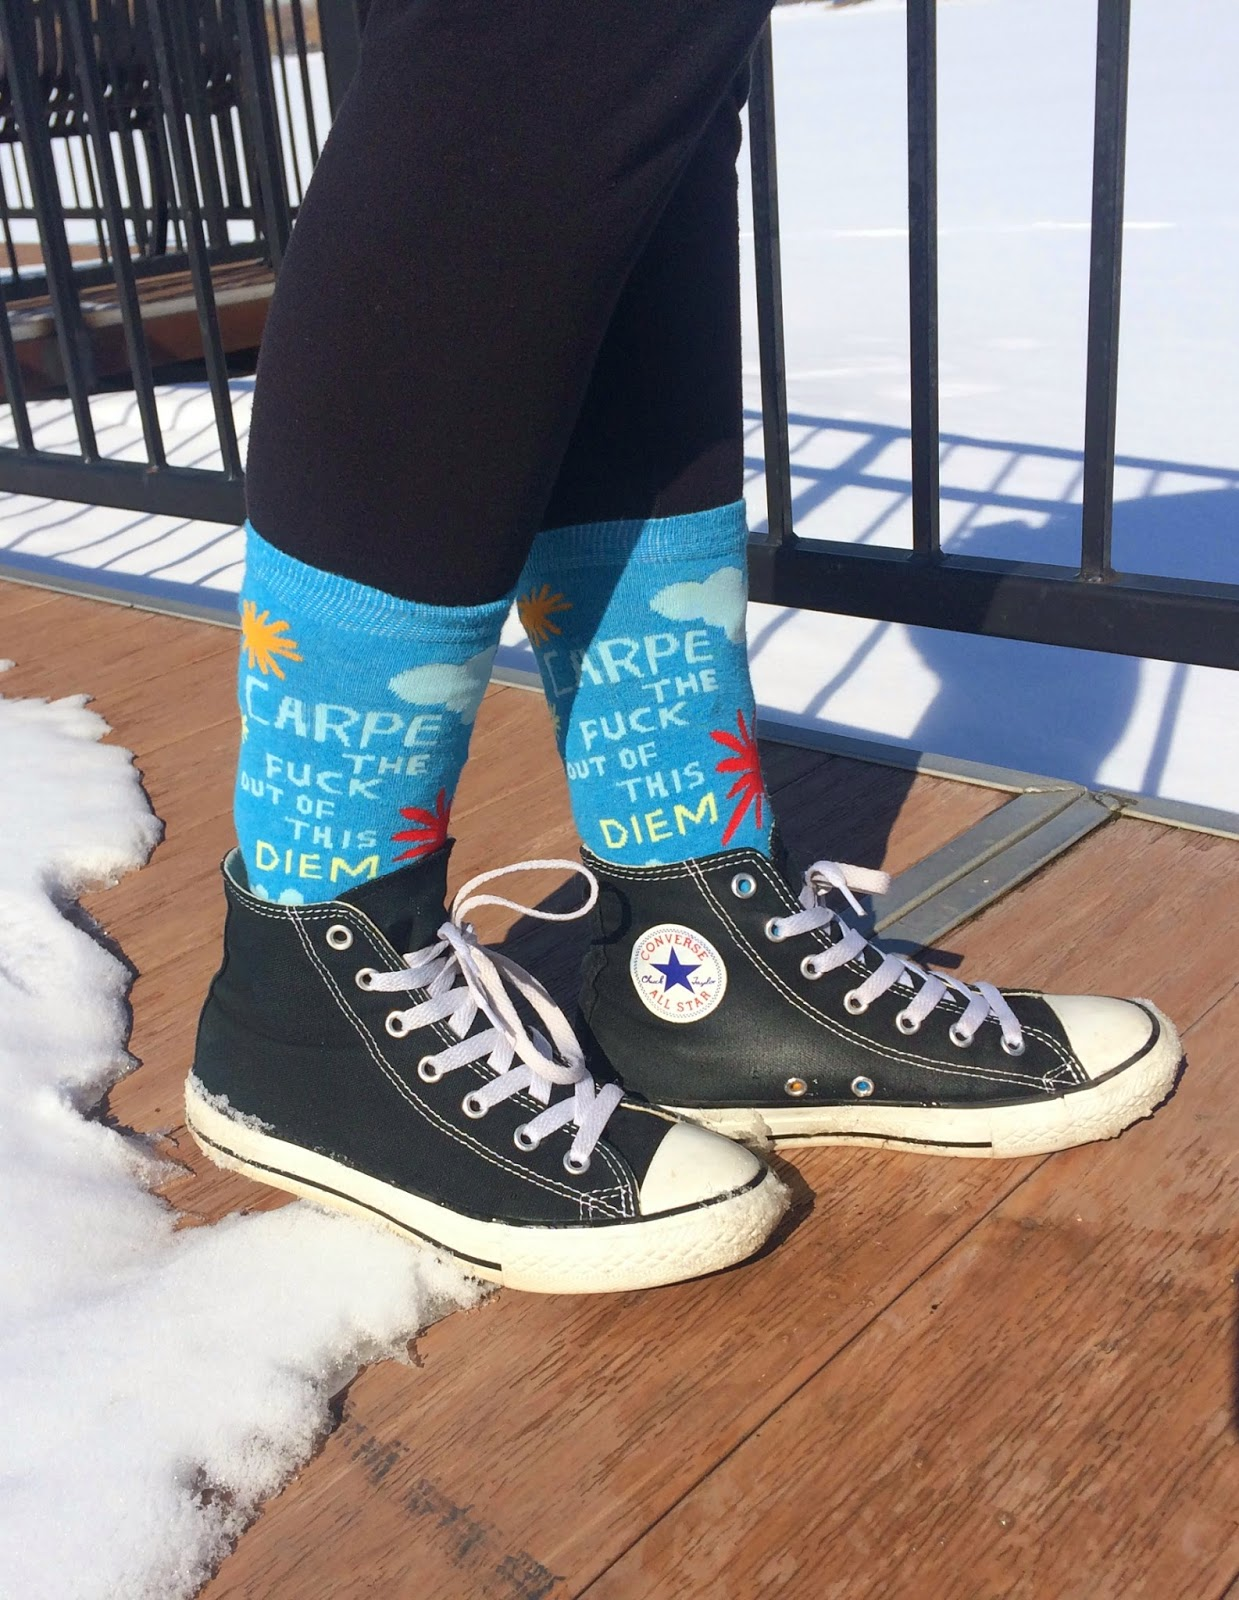 Quirky Carpe Diem Socks